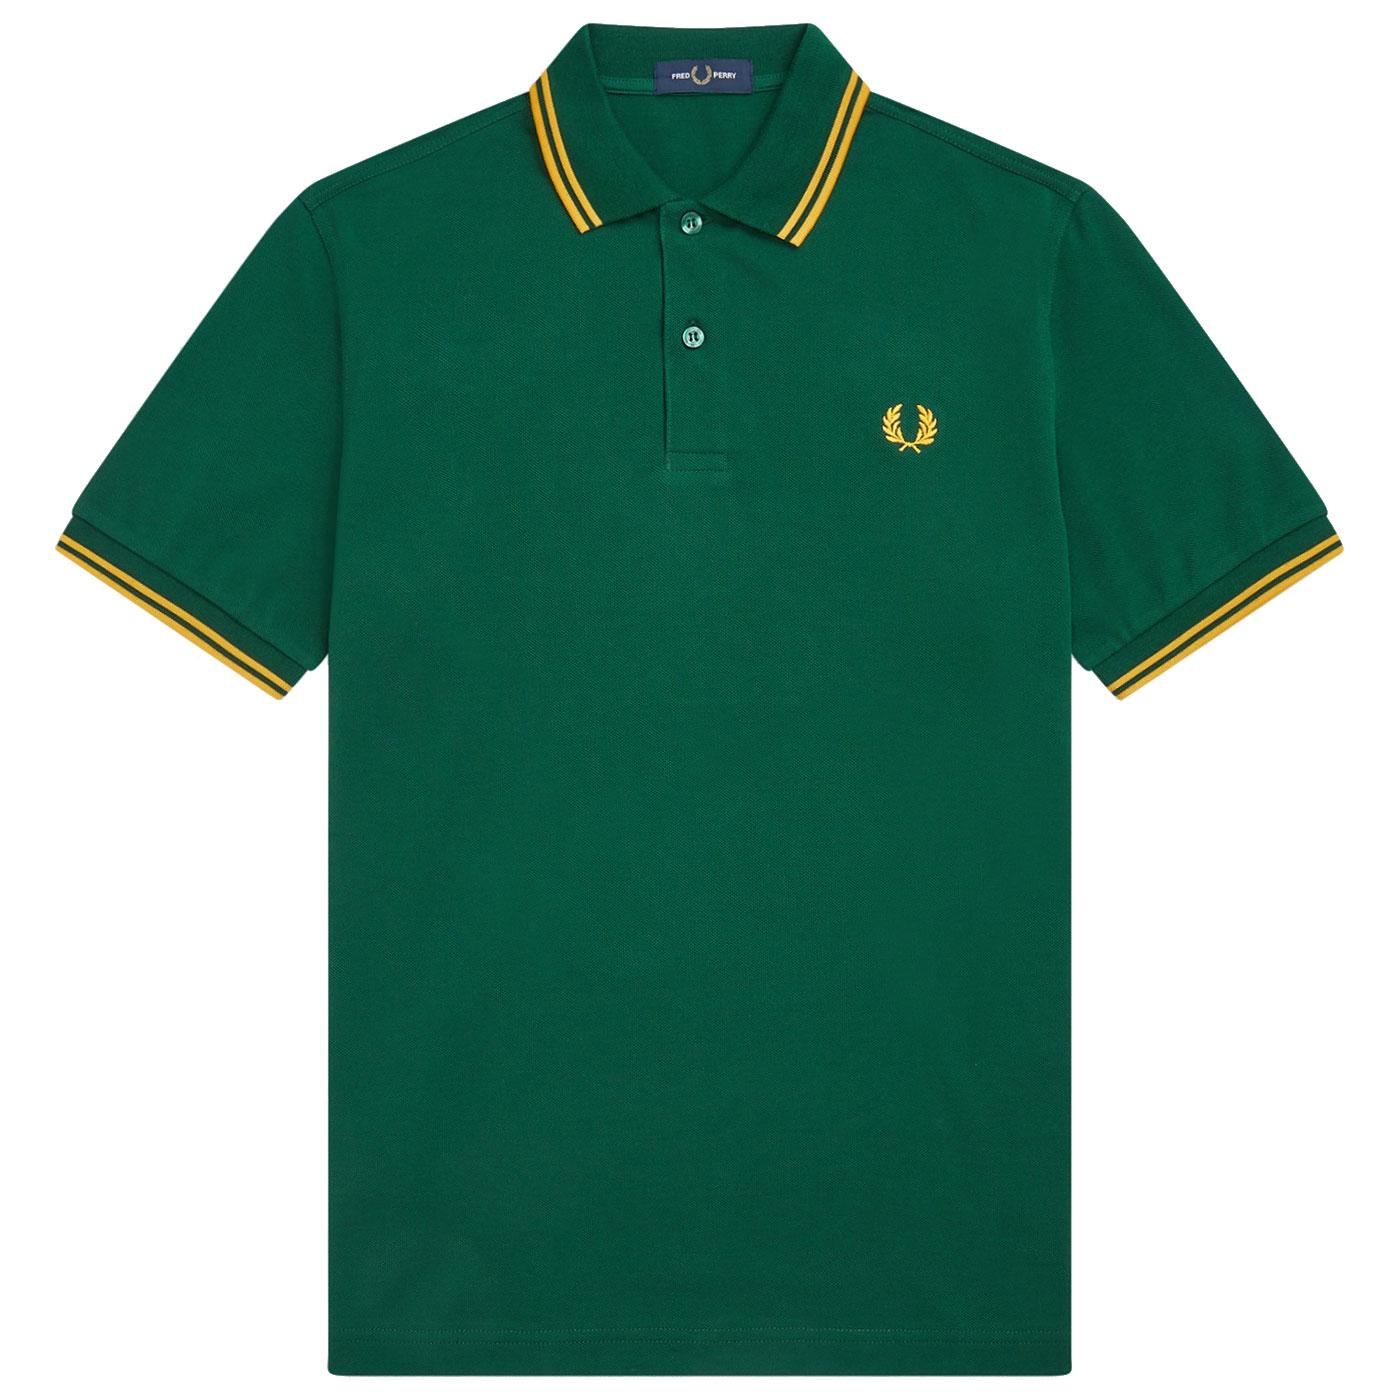 FRED PERRY M3600 Mod Twin Tipped Pique Polo IVY